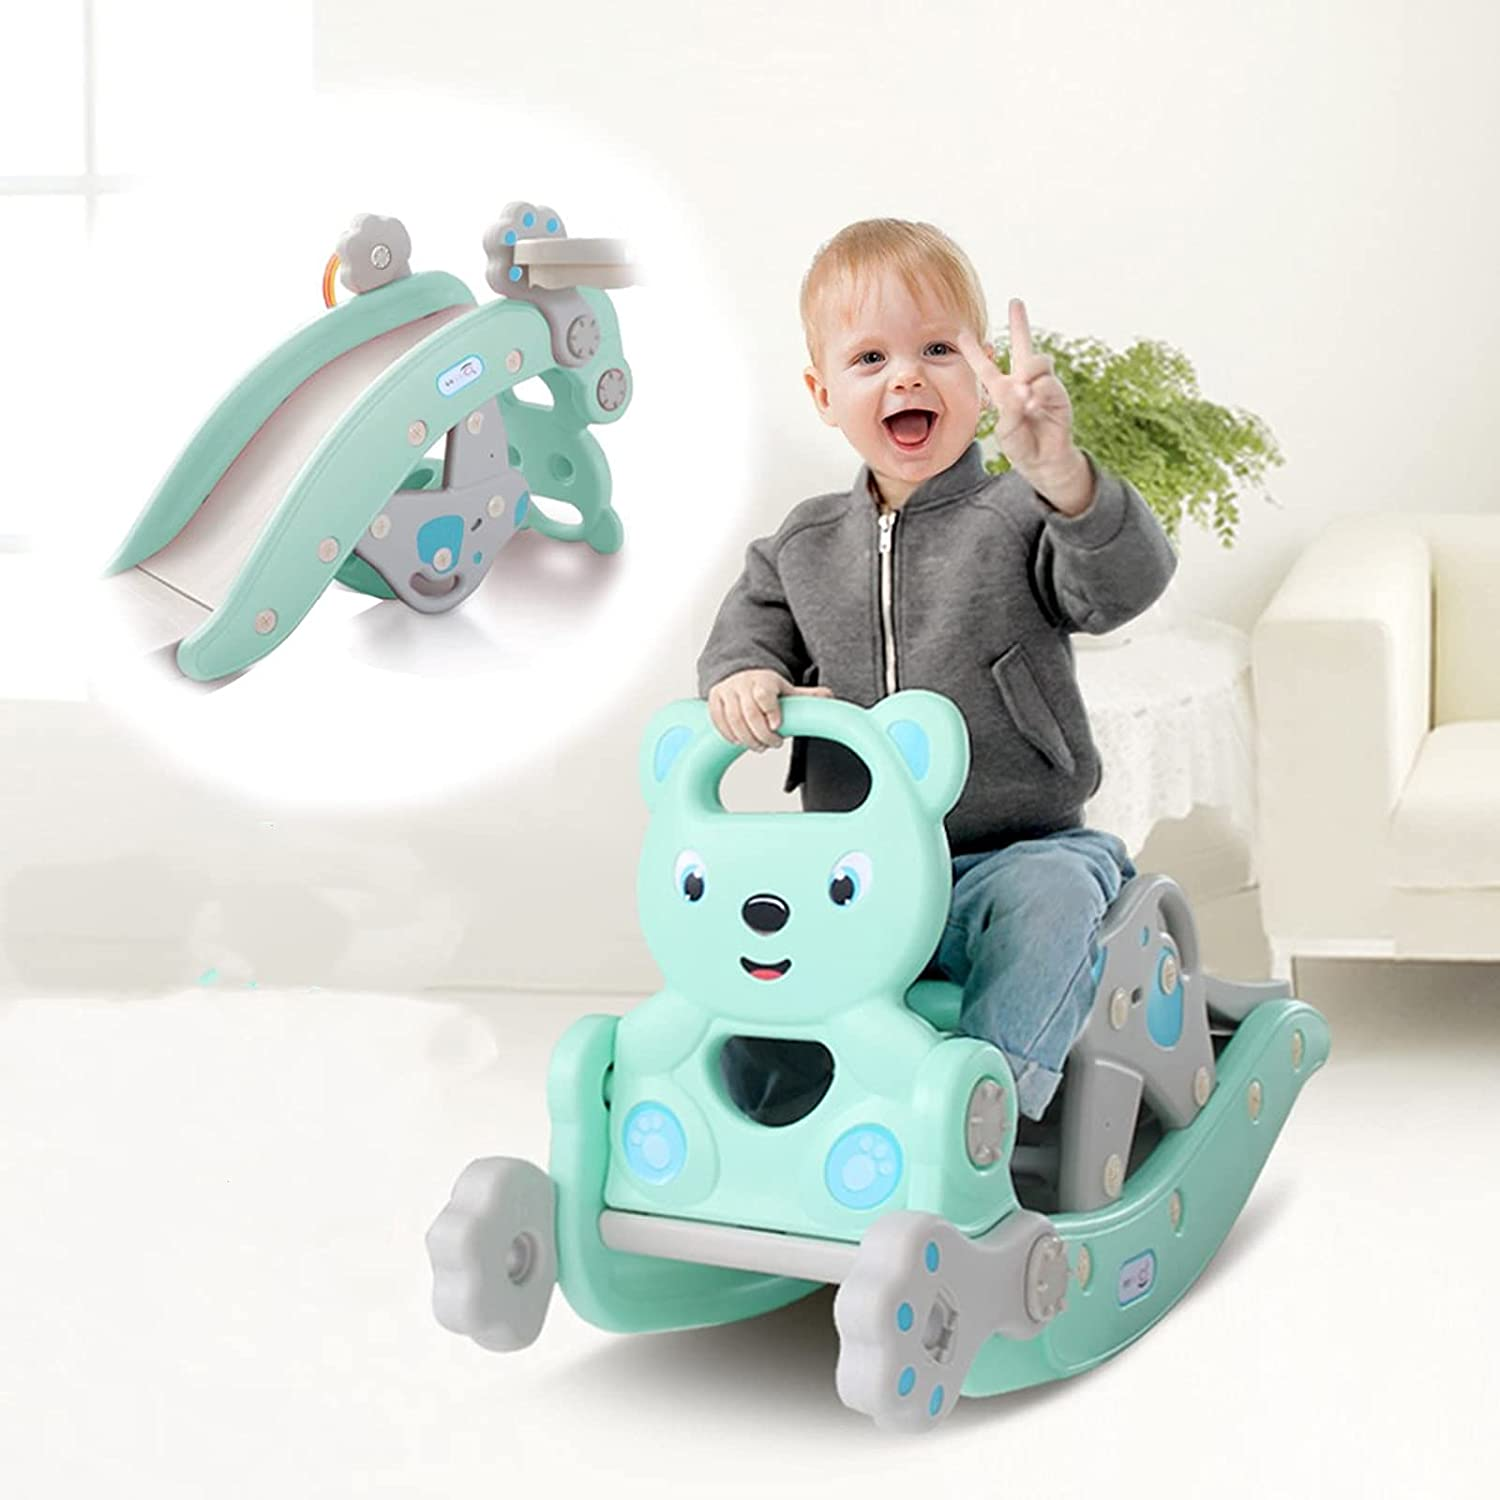 QAZQ 4 in 1 Kids Slipping Slide and Rocking Horse Suit Indoor Ou